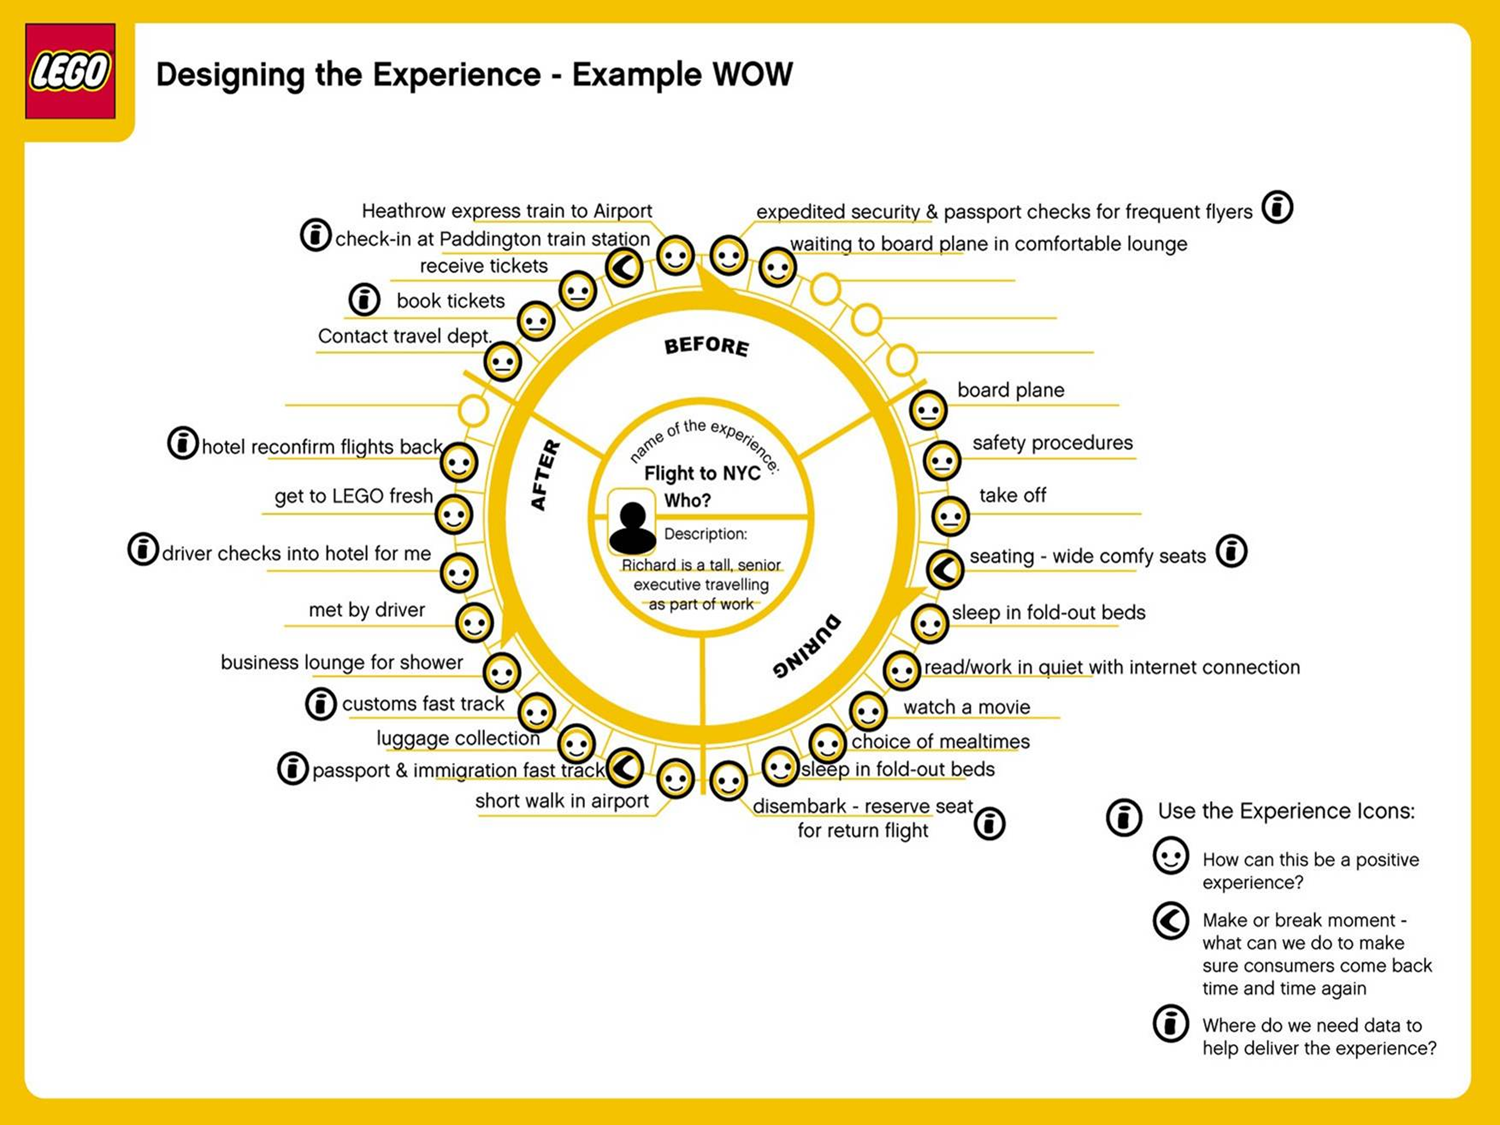 Lego - Designing the Experience - Example WOW